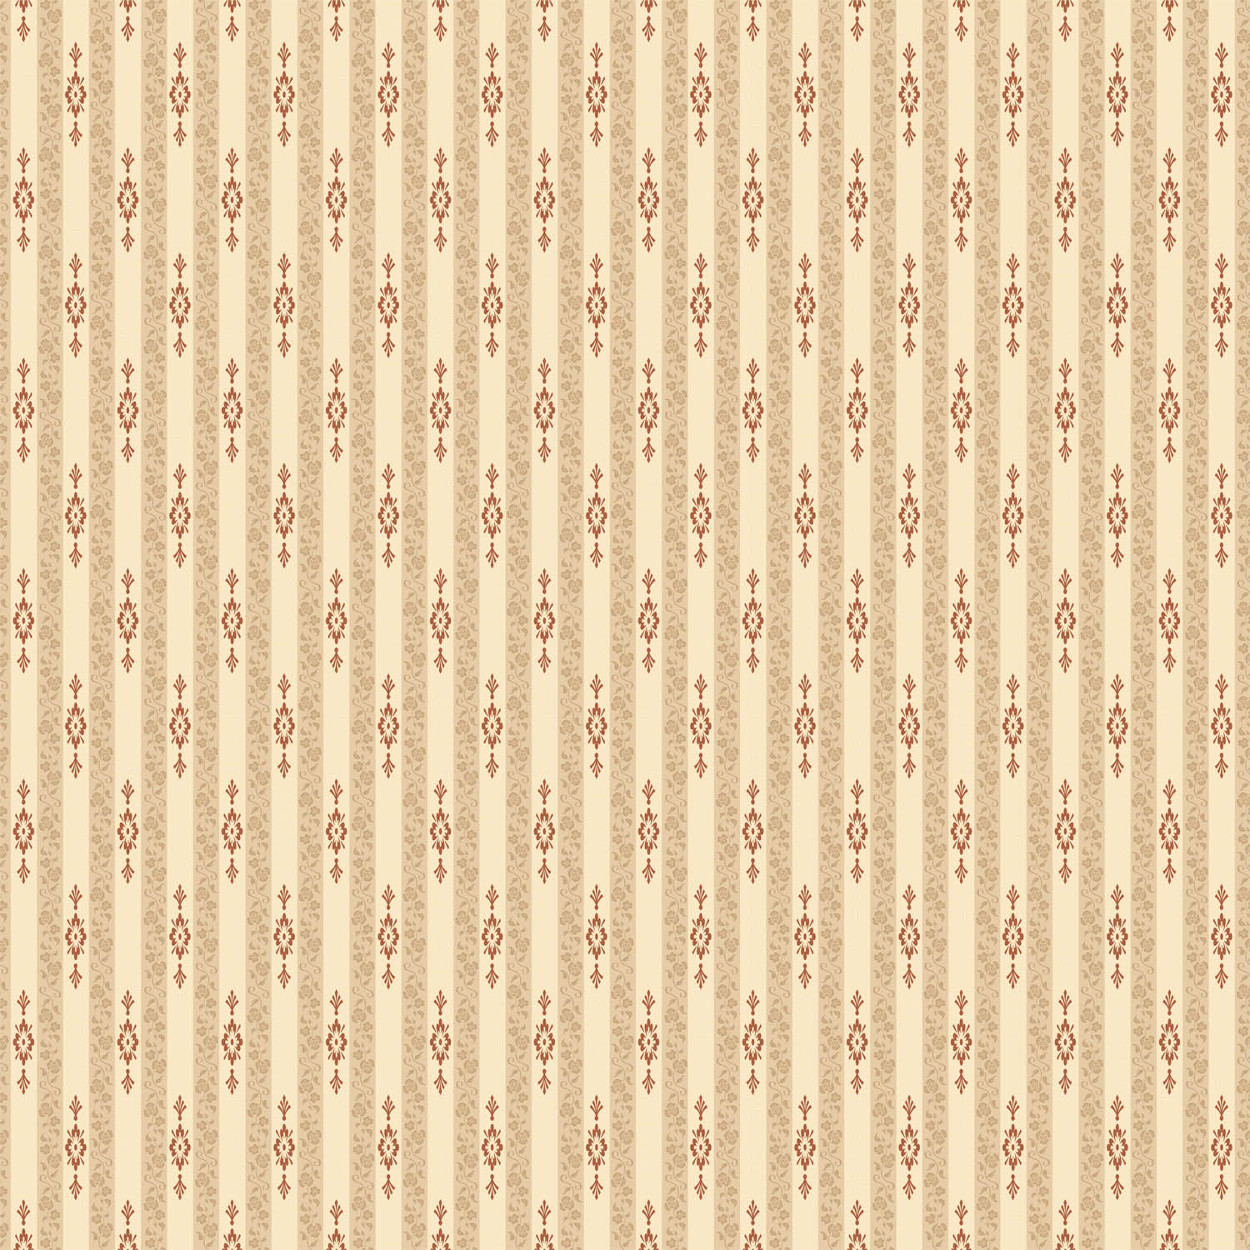 Old 1940s Home Style Vintage Wallpaper Backdrop Decoration